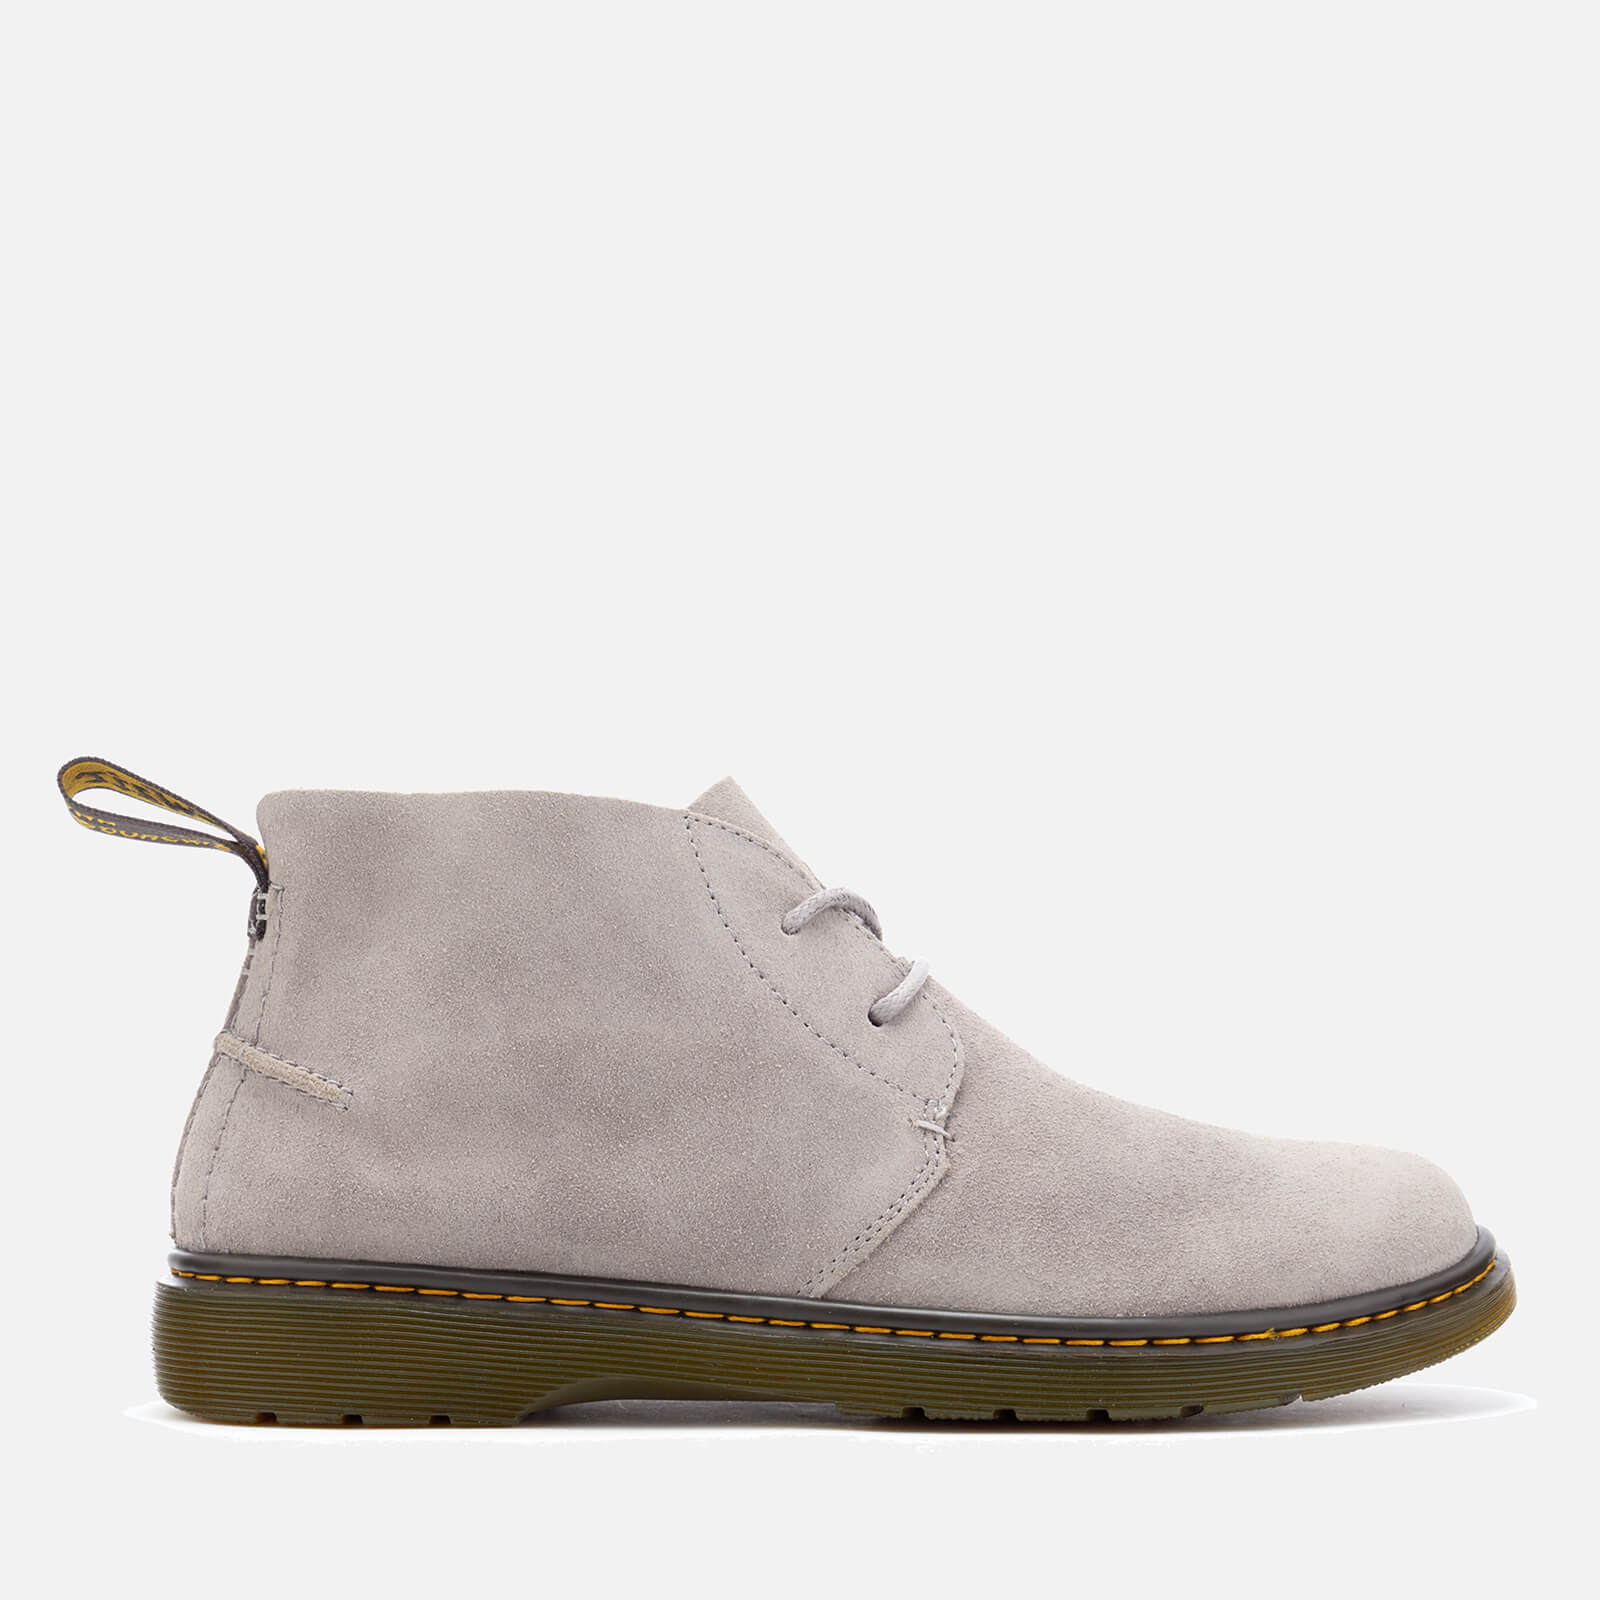 2a7a336826f Dr. Martens Men's Ember Bronx Suede Lace Low Boots - Mid Grey